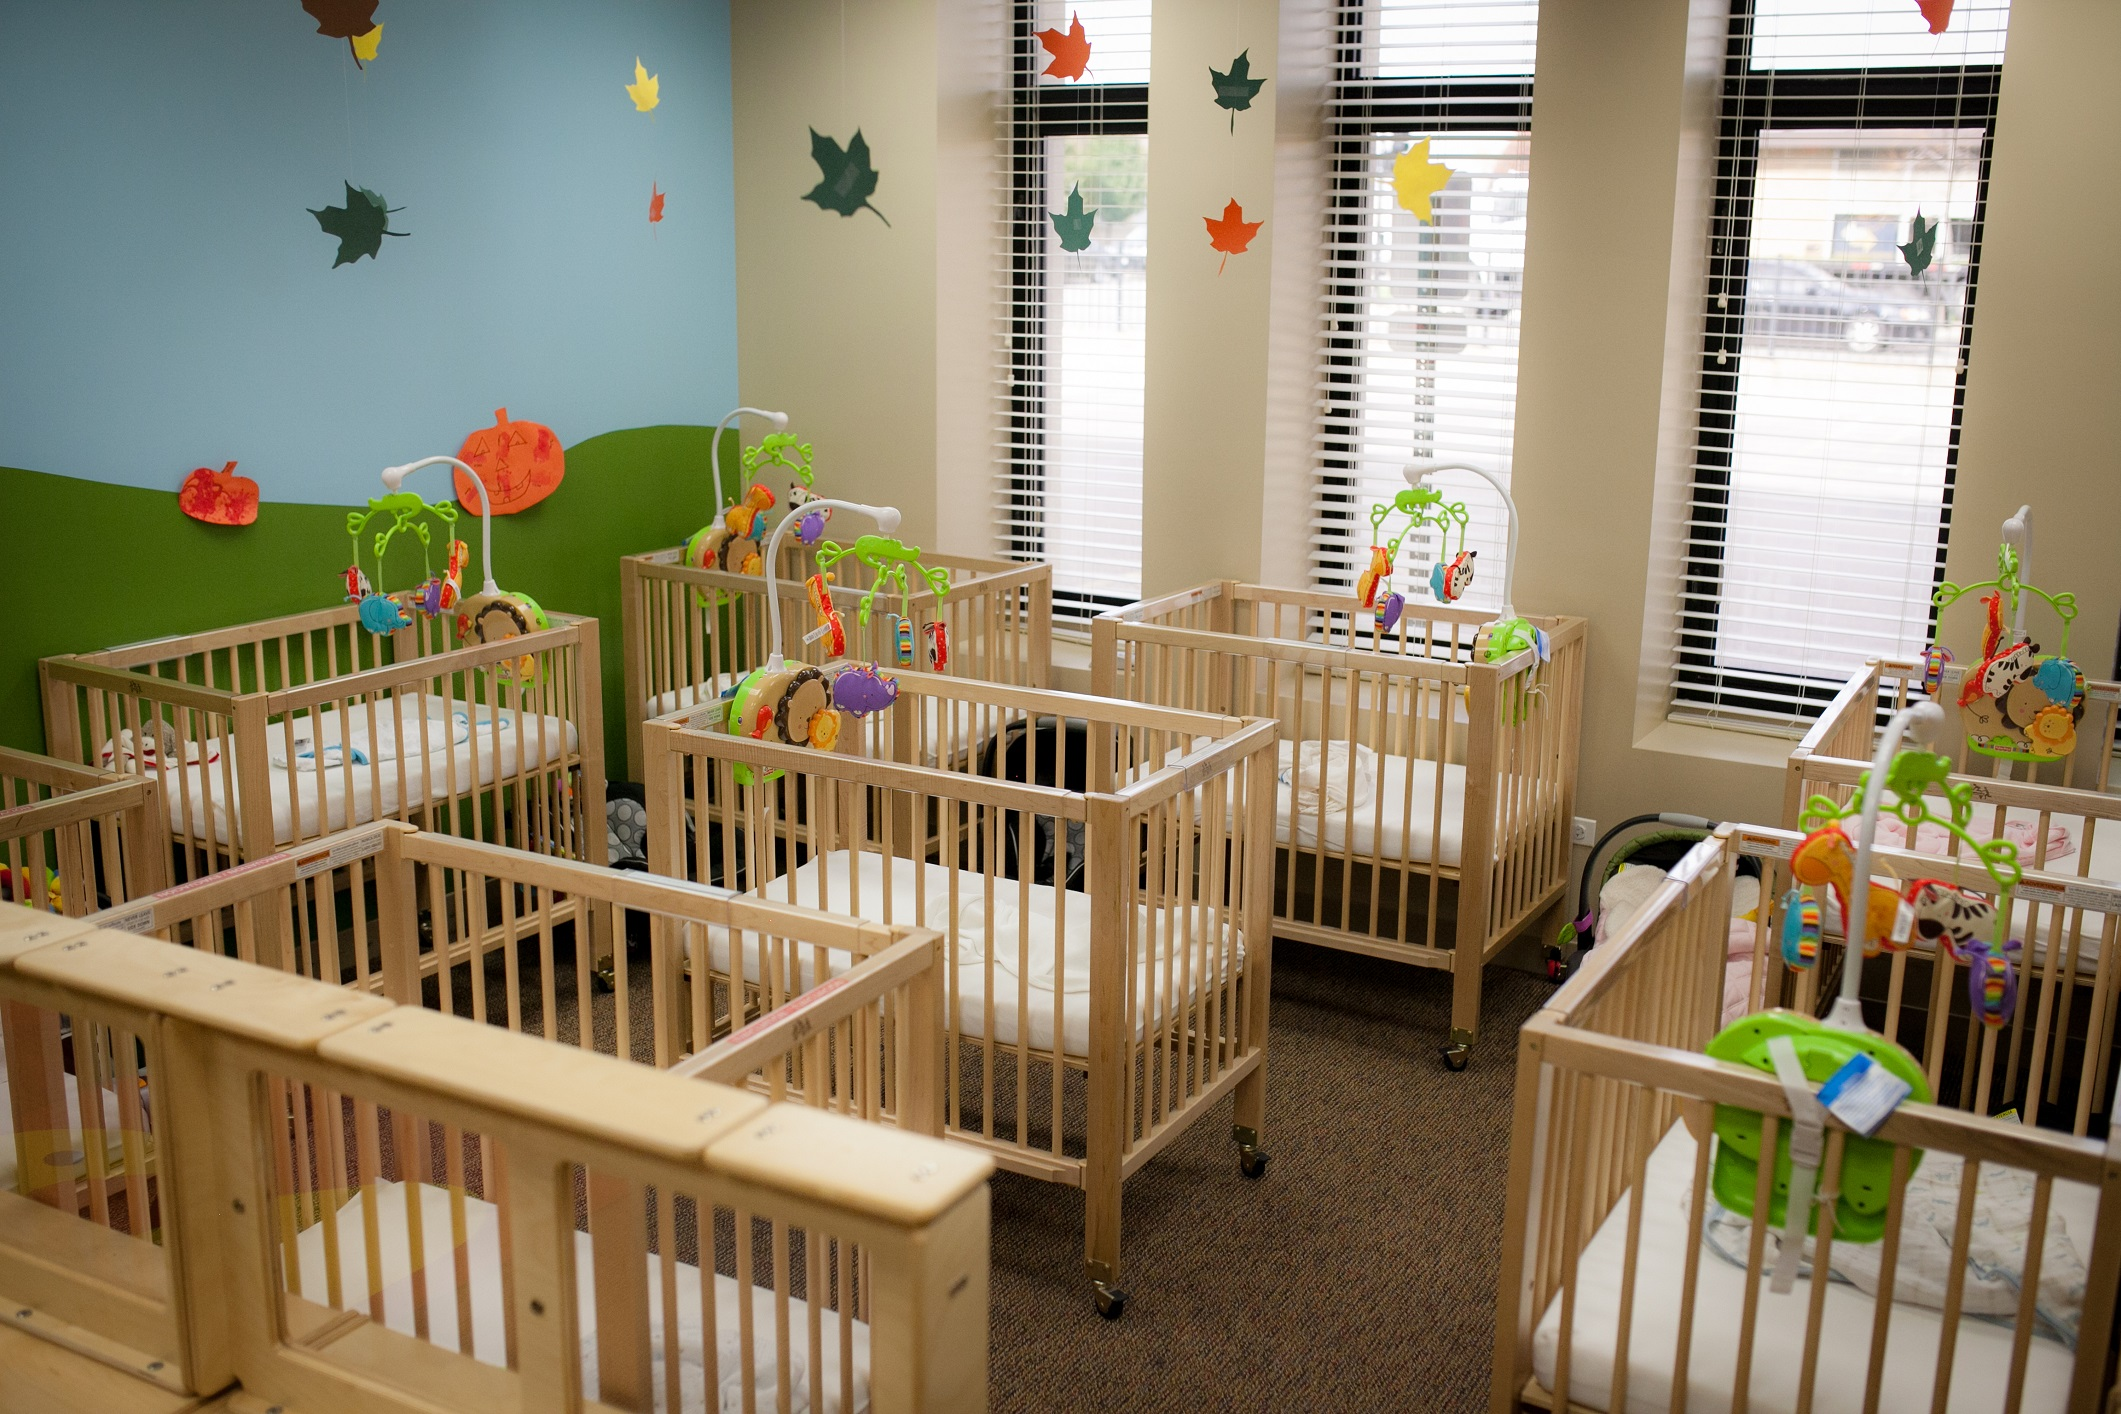 Baby cribs for daycare centers - Baby Cribs For Daycare Centers 48